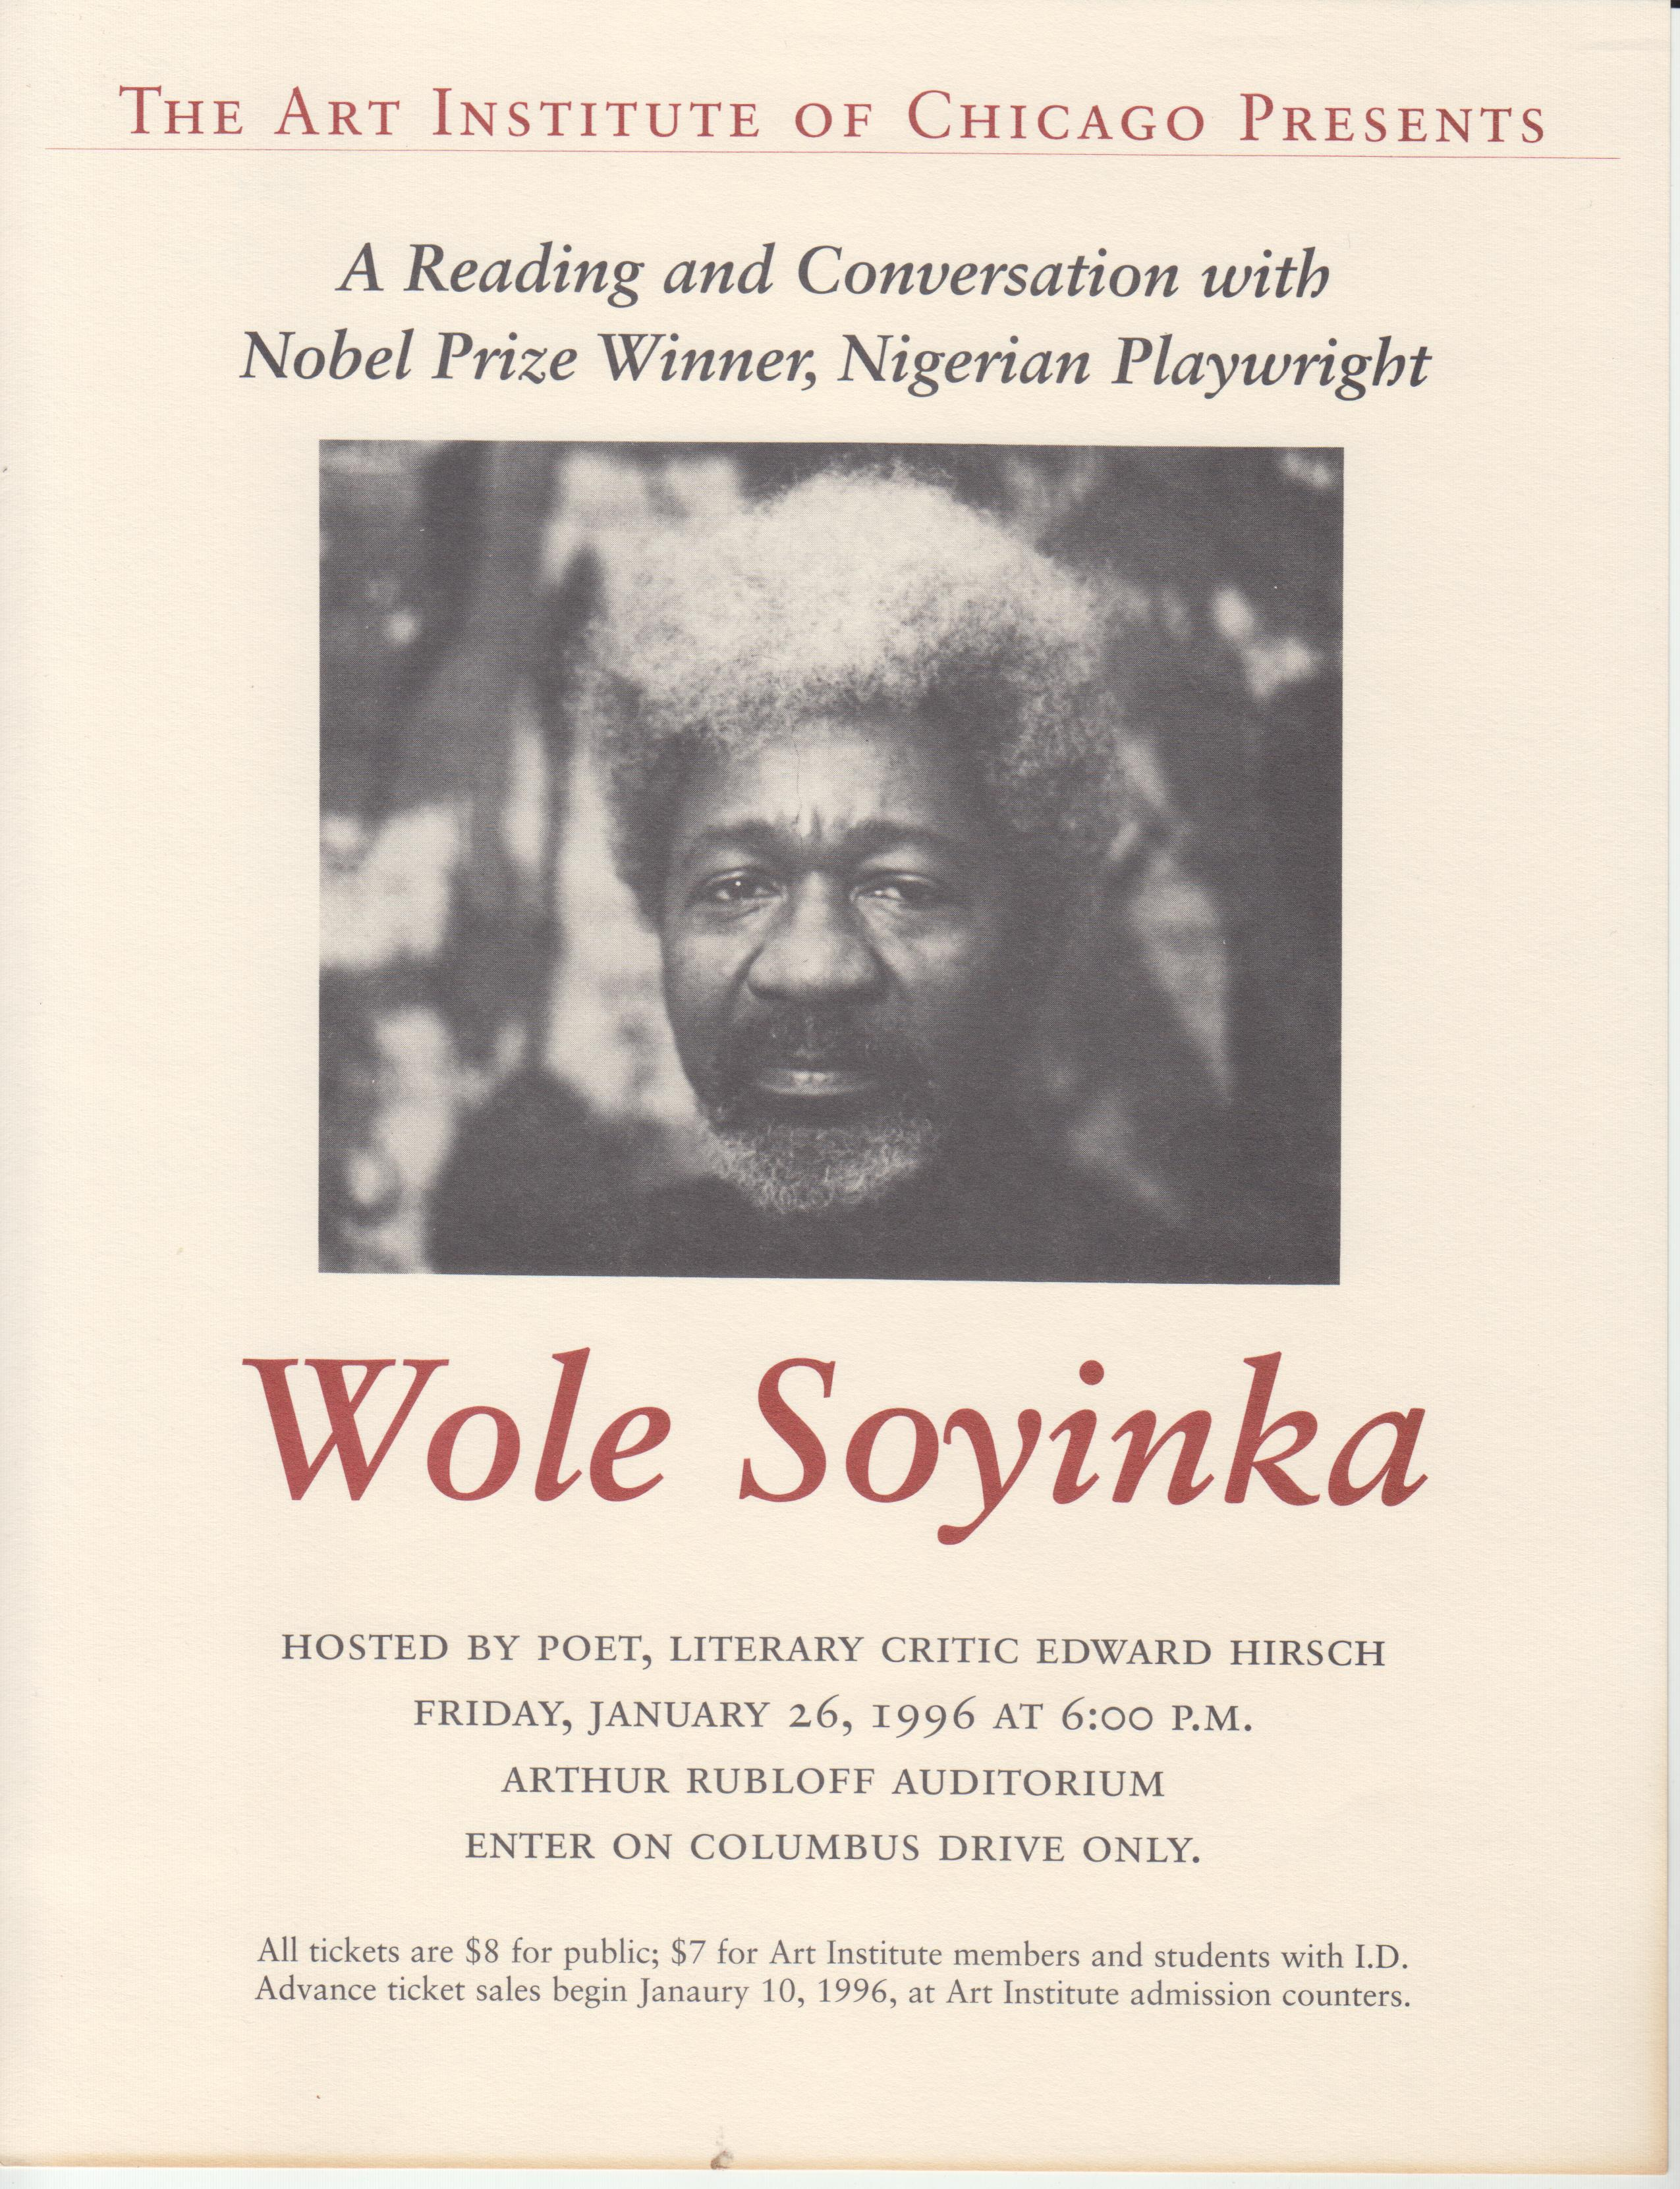 Image for Leaflet / Poster The Art Institute of Chicago Presents A Reading and Conversation with Nobel Prize Winner, Nigerian Playwright Wole Soyinka... January 26, 1996.....